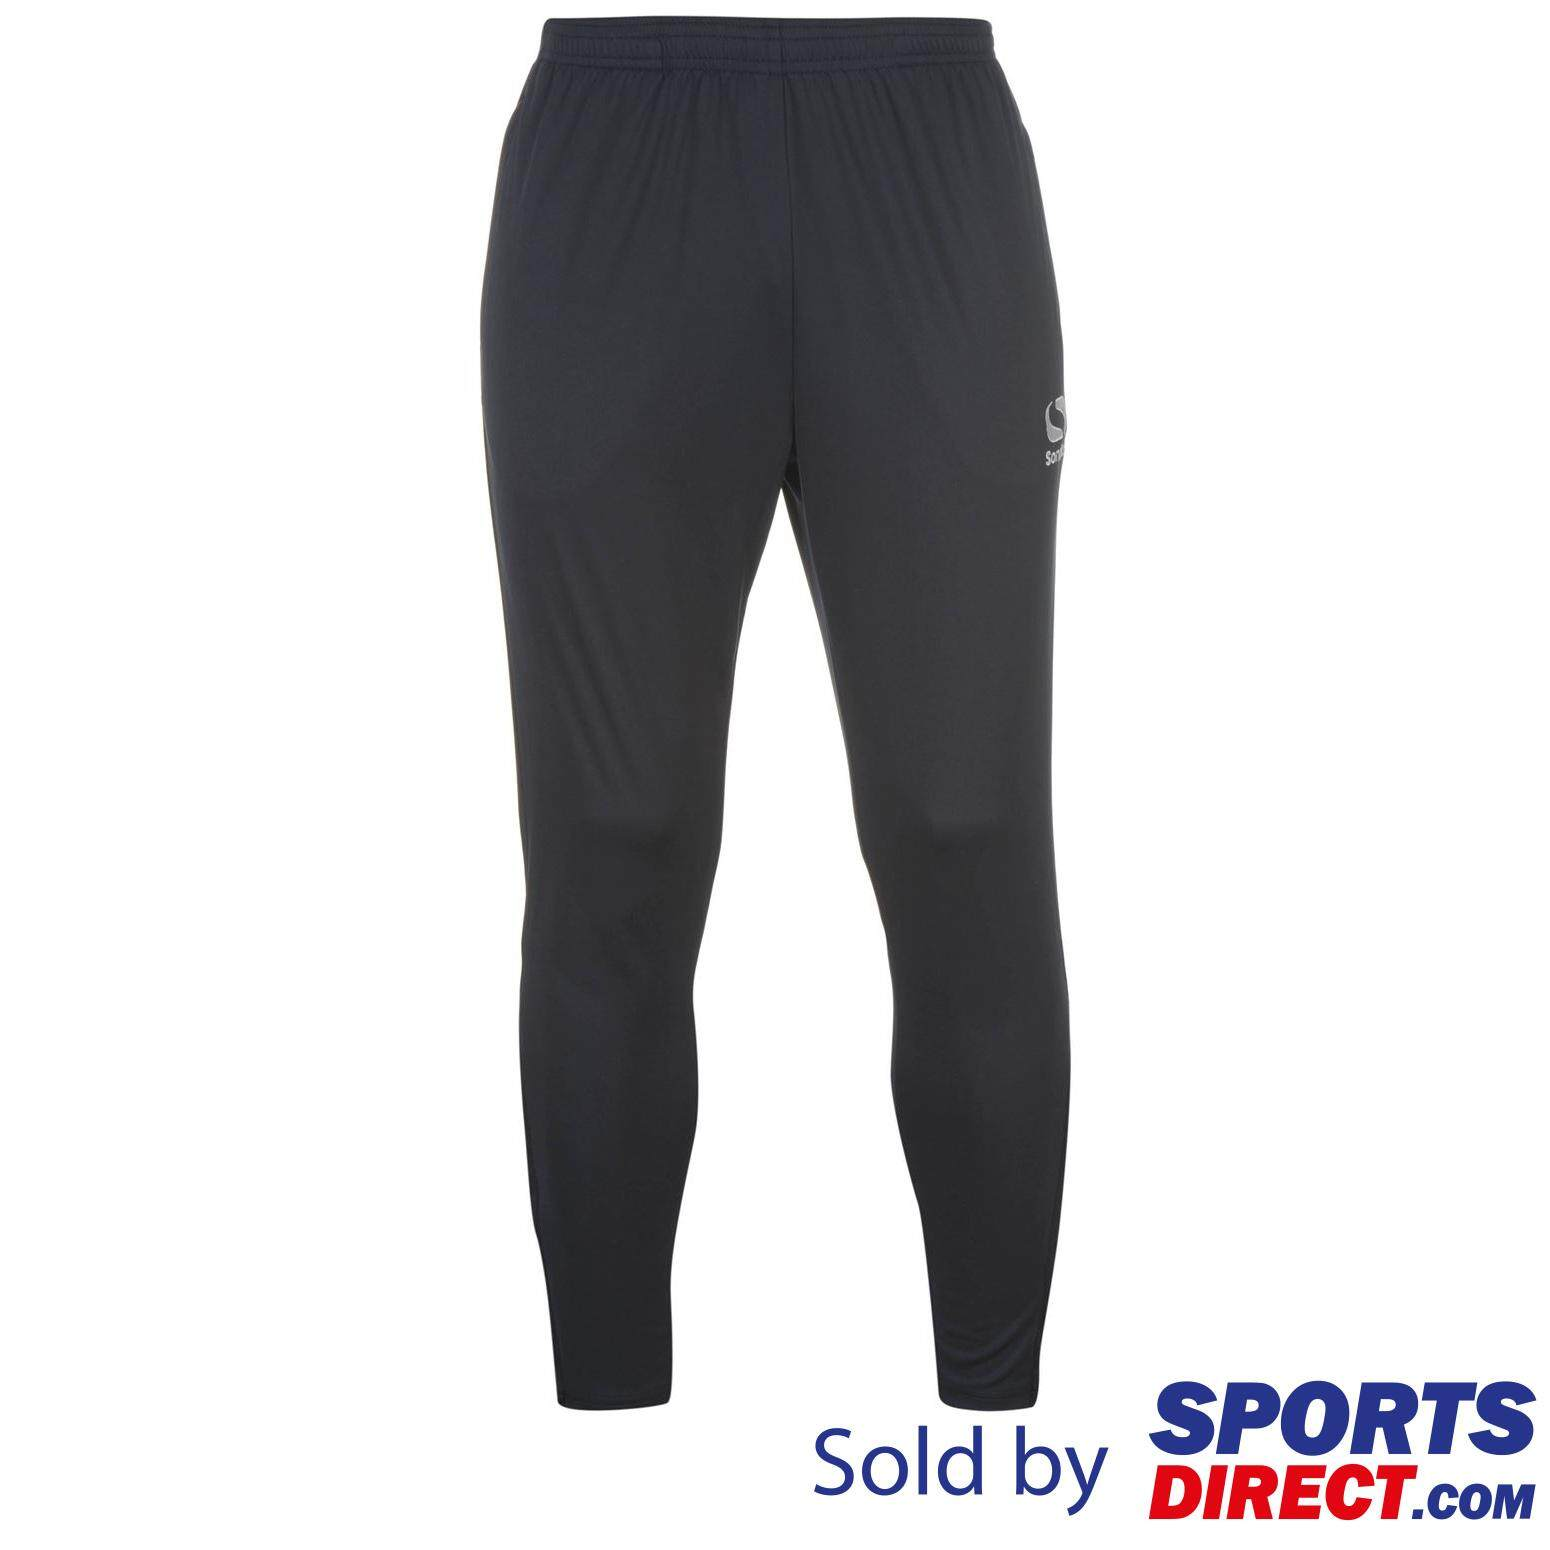 Sondico Kids Boys Strike Training Pants (navy) By Sports Direct Mst Sdn Bhd.